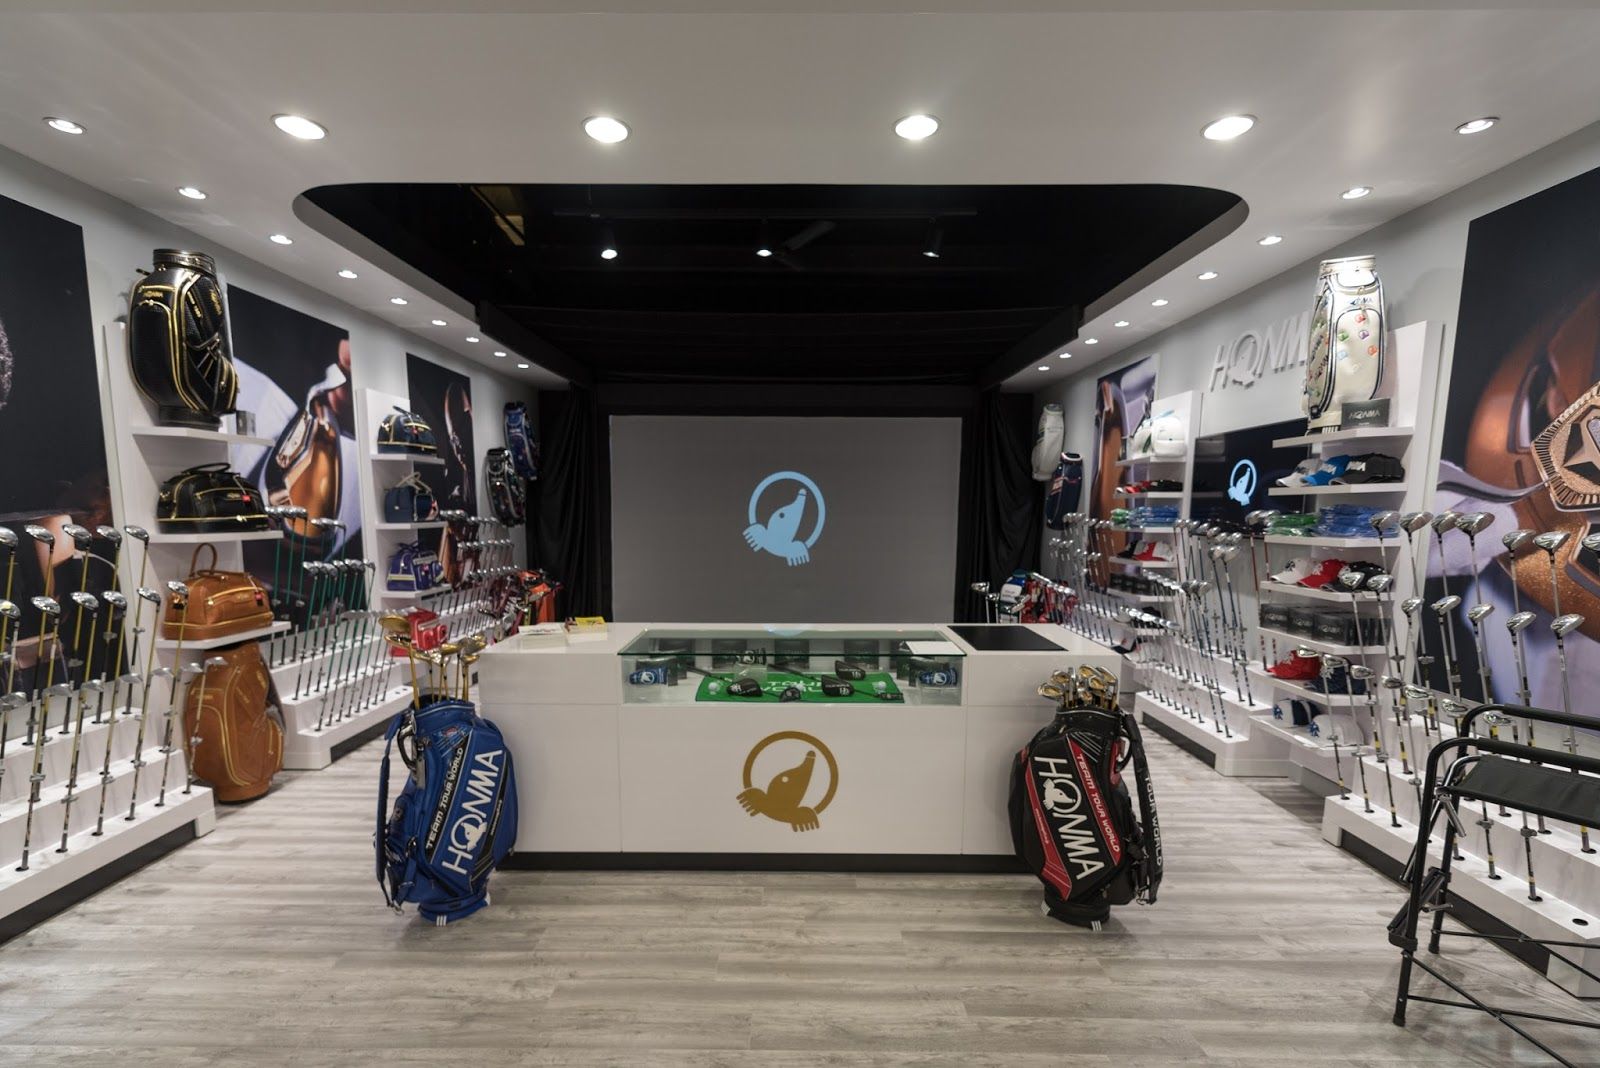 American Golfer  Honma Golf Opens Southern California Gallery Store     one of golf s highest end equipment brands     last night opened a  gallery concept retail and club fitting space within the popular Roger Dunn Golf  Shops